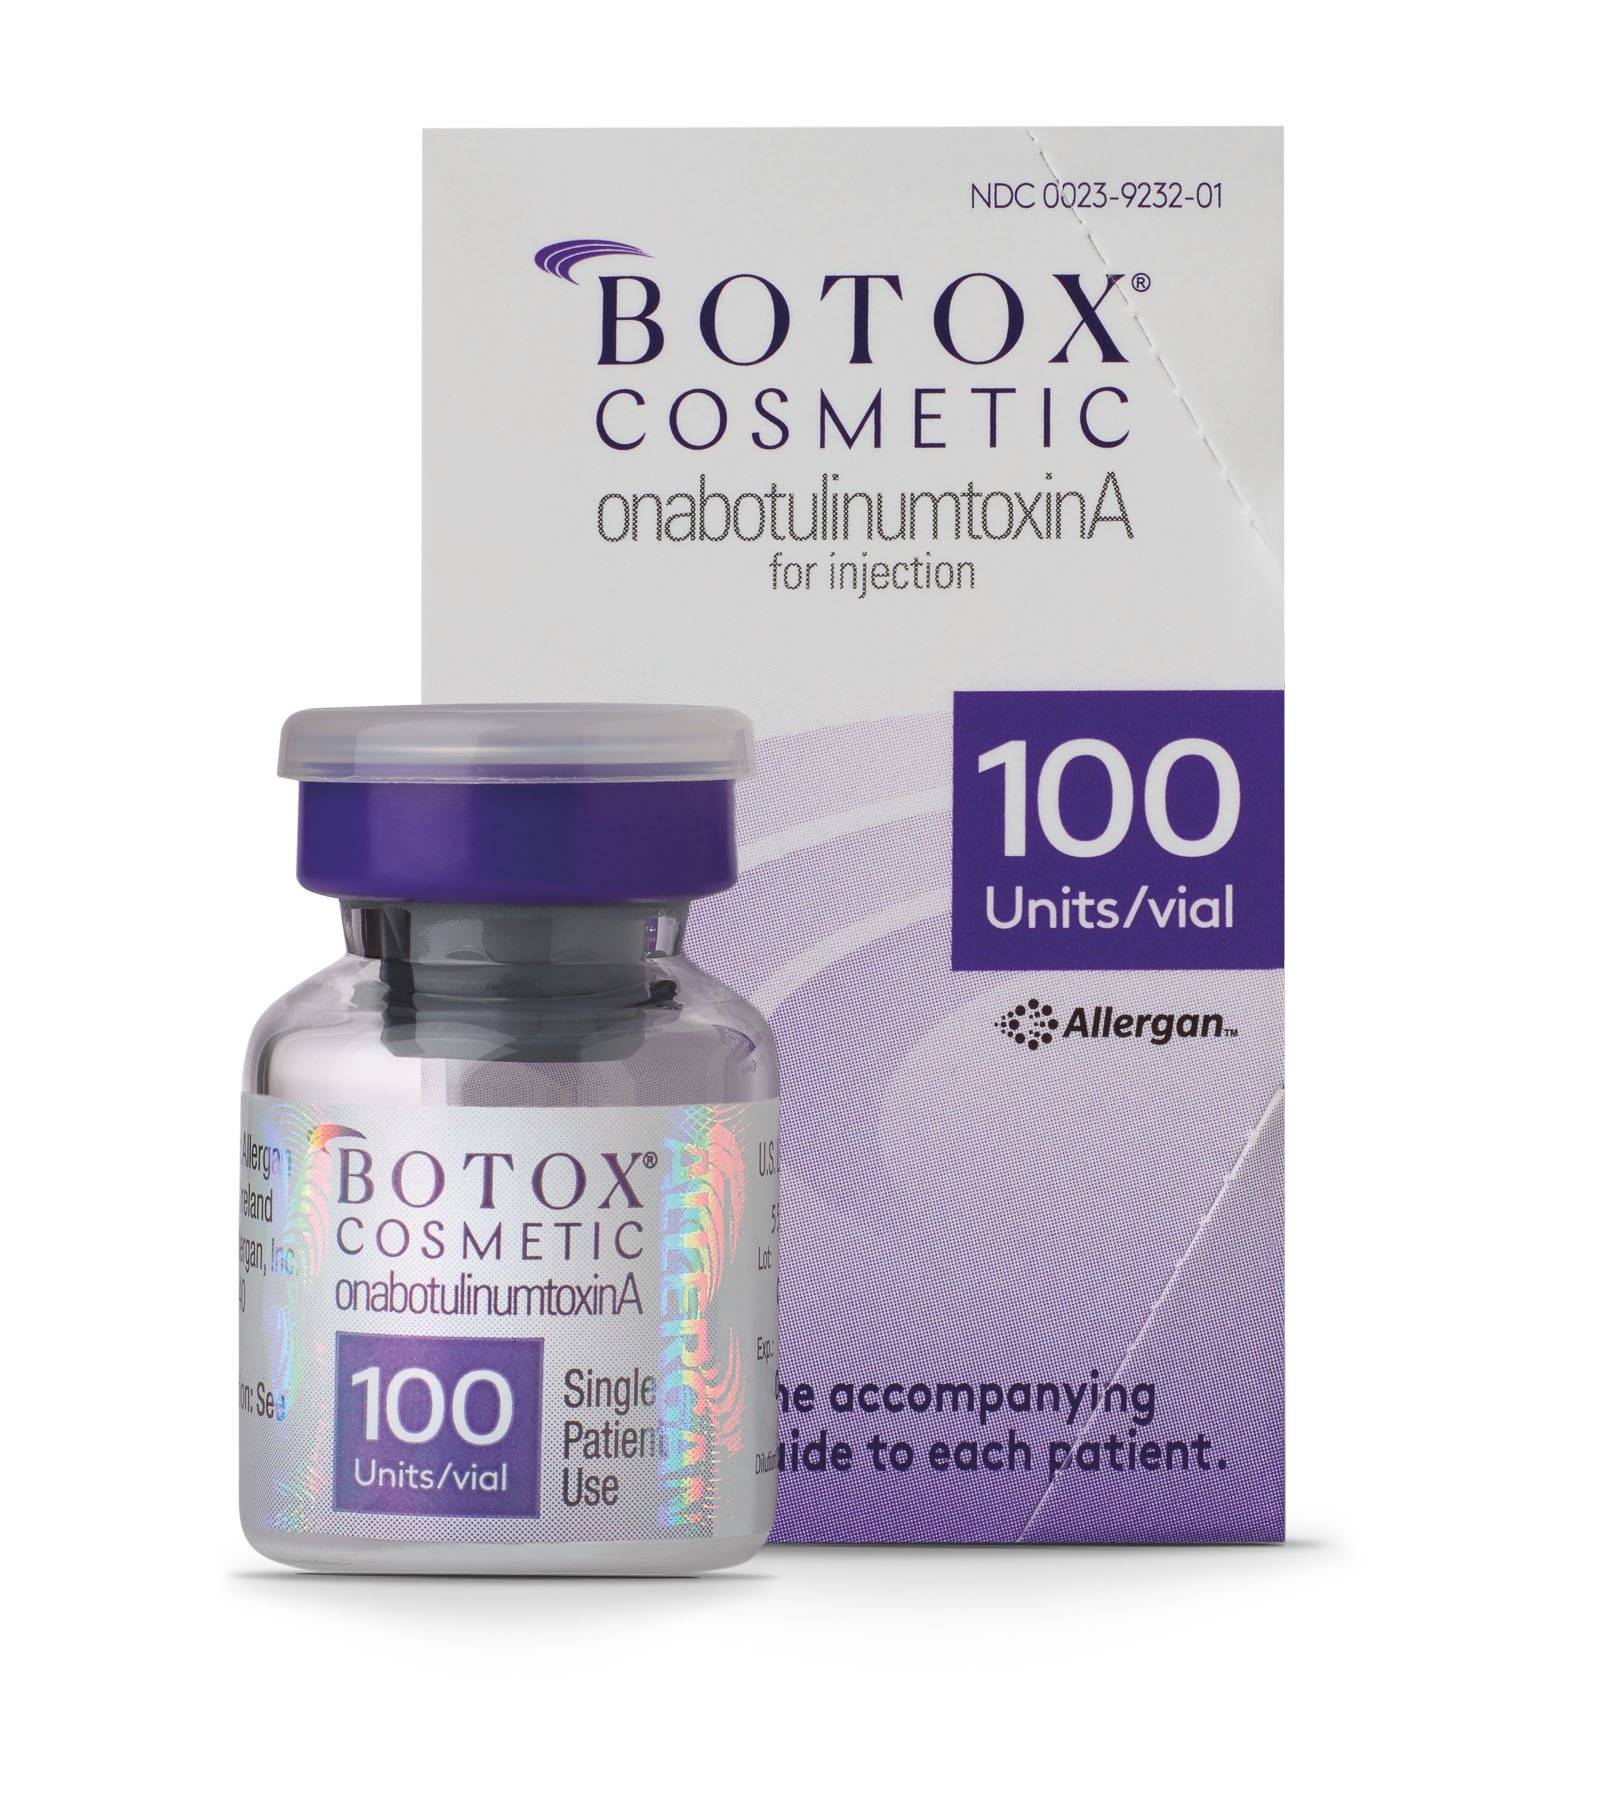 BOTOX Cosmetic Vial and Packaging Image